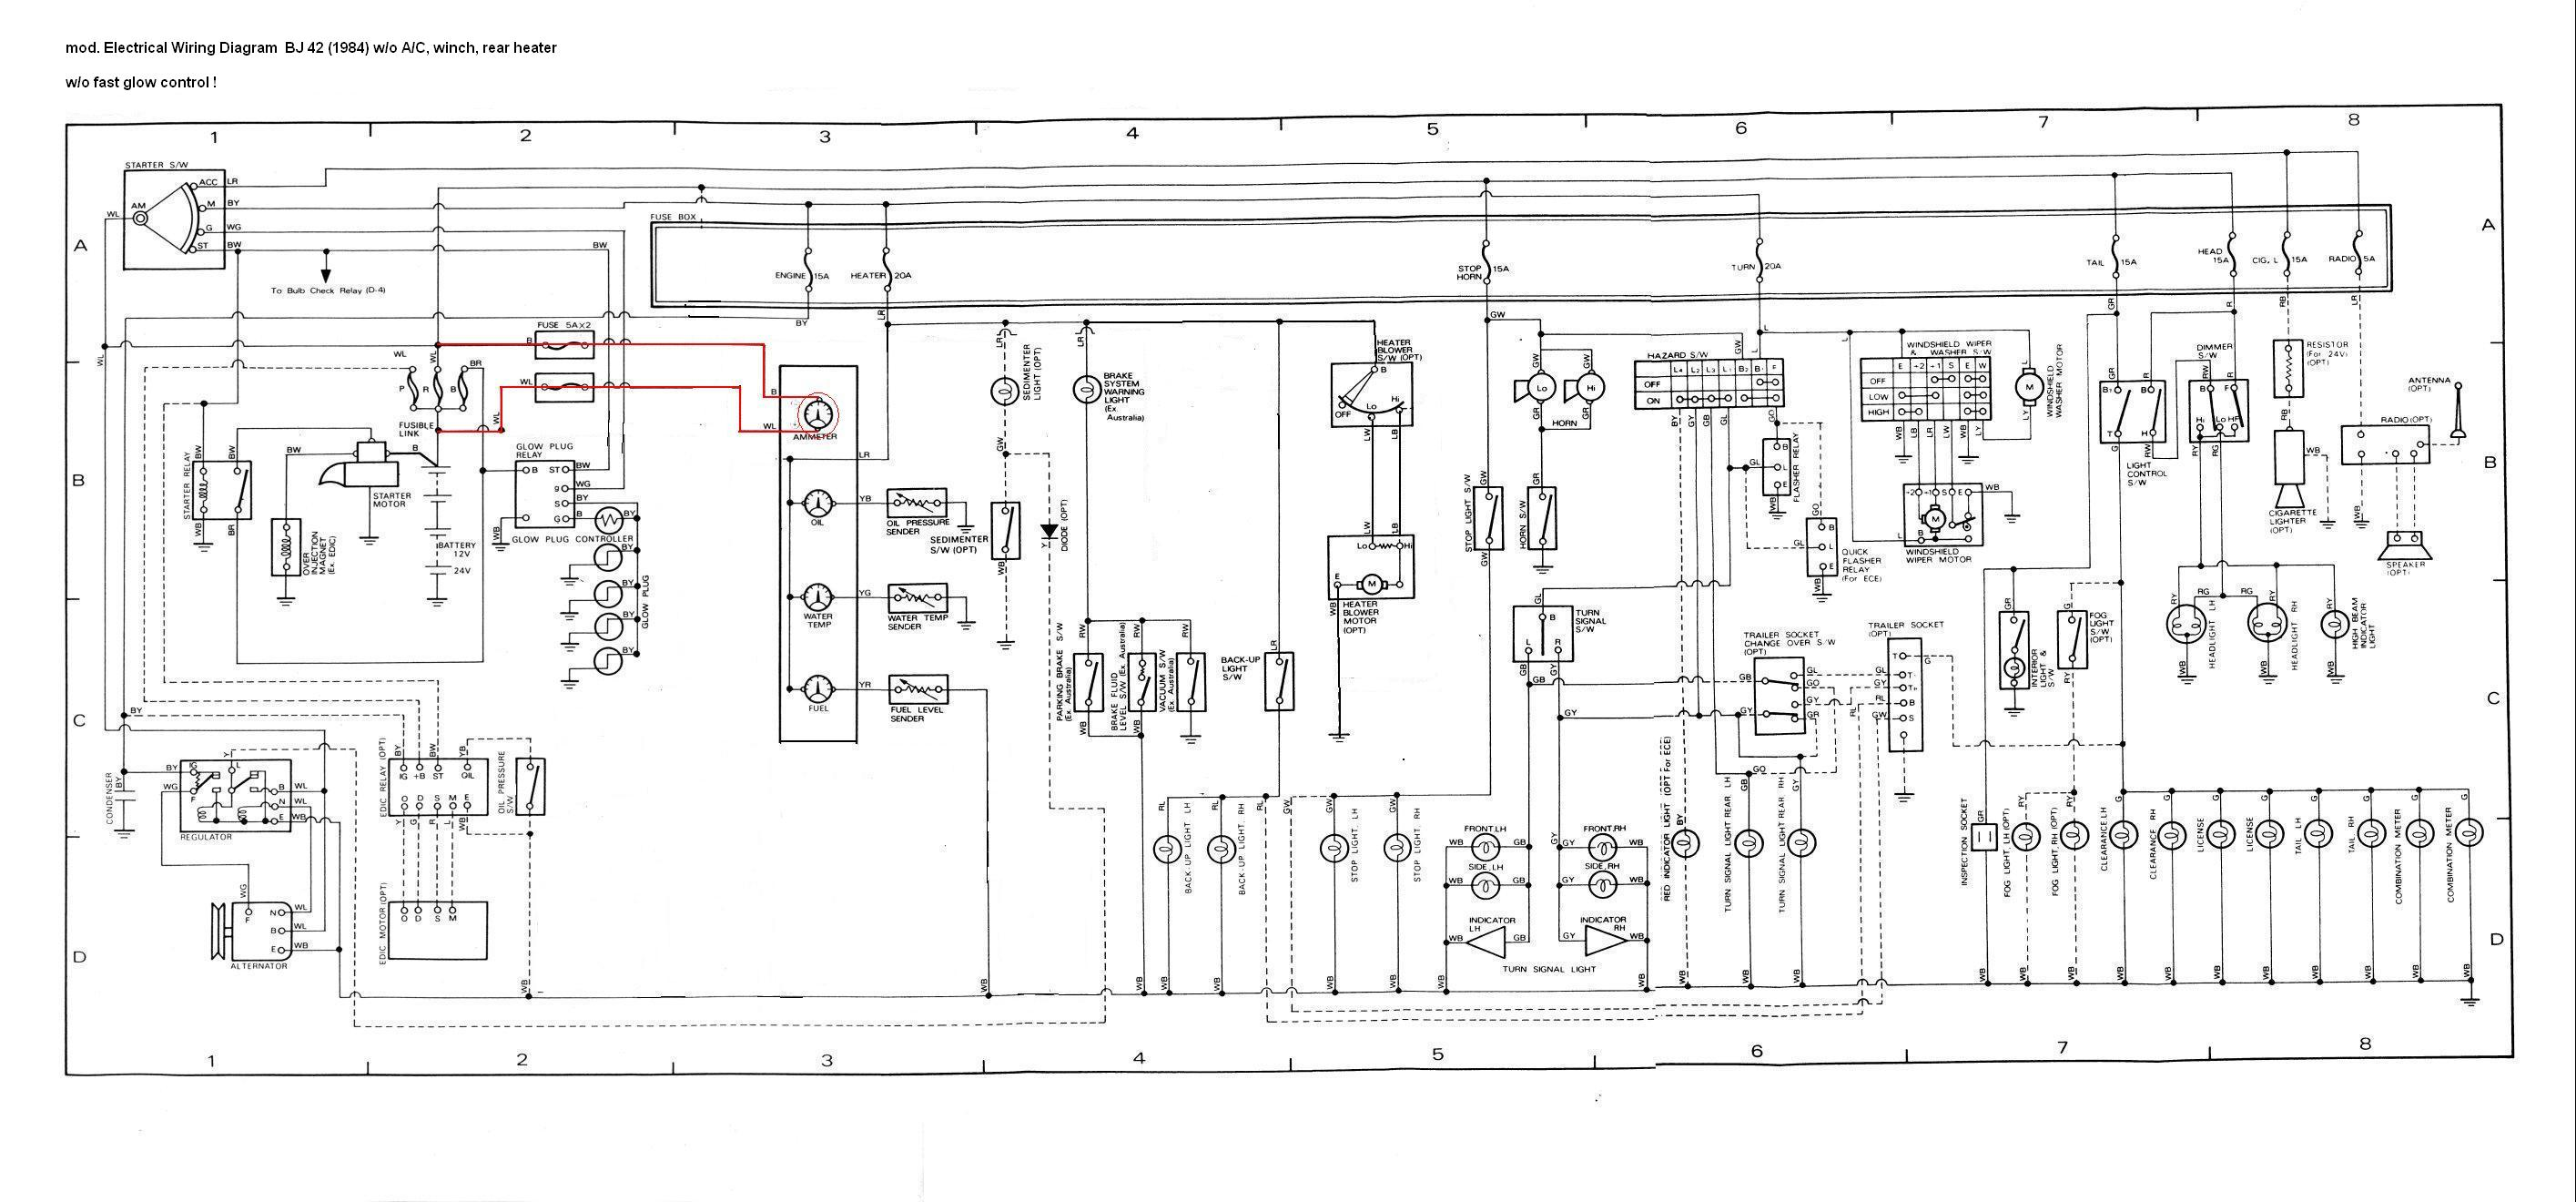 2009 fj cruiser wiring diagram